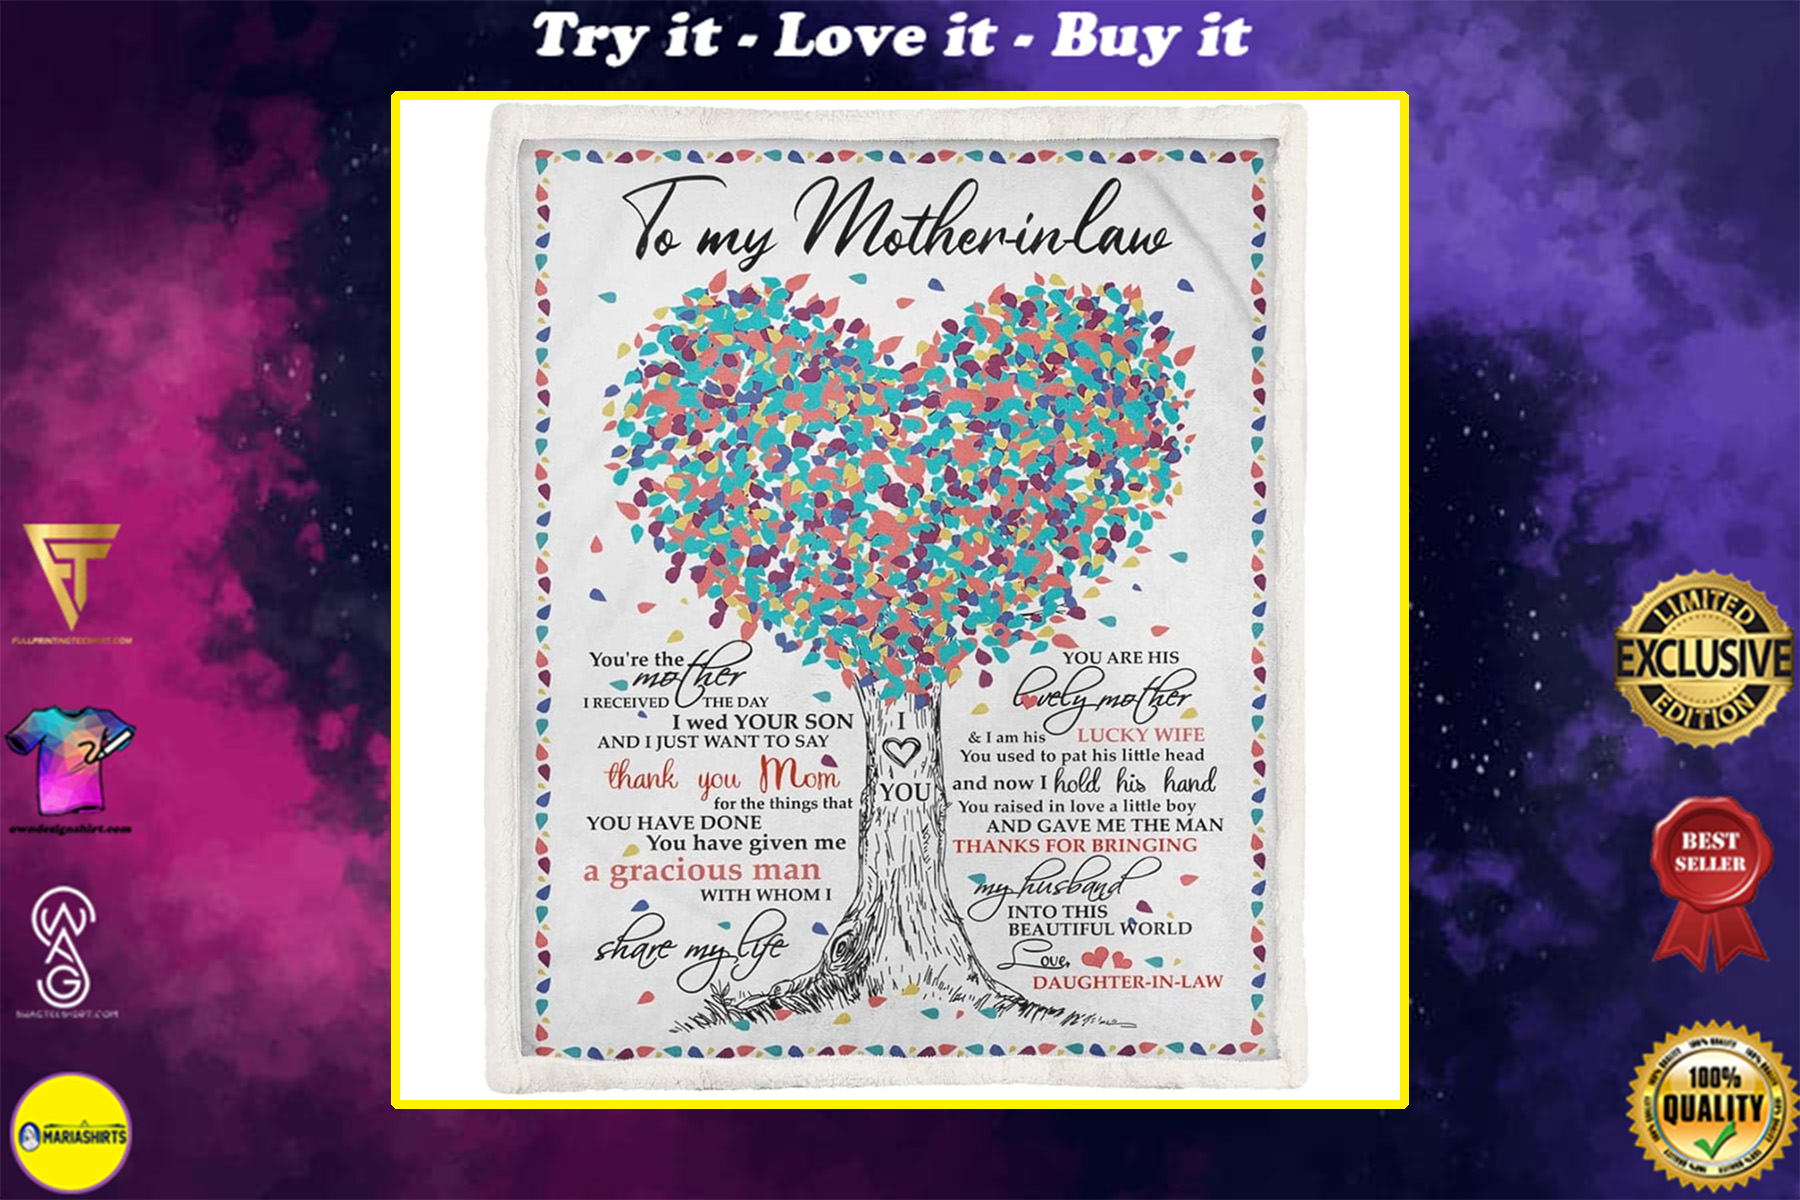 tree of love to mother-in-law thanks for bringing my husband love daughter-in-law blanket